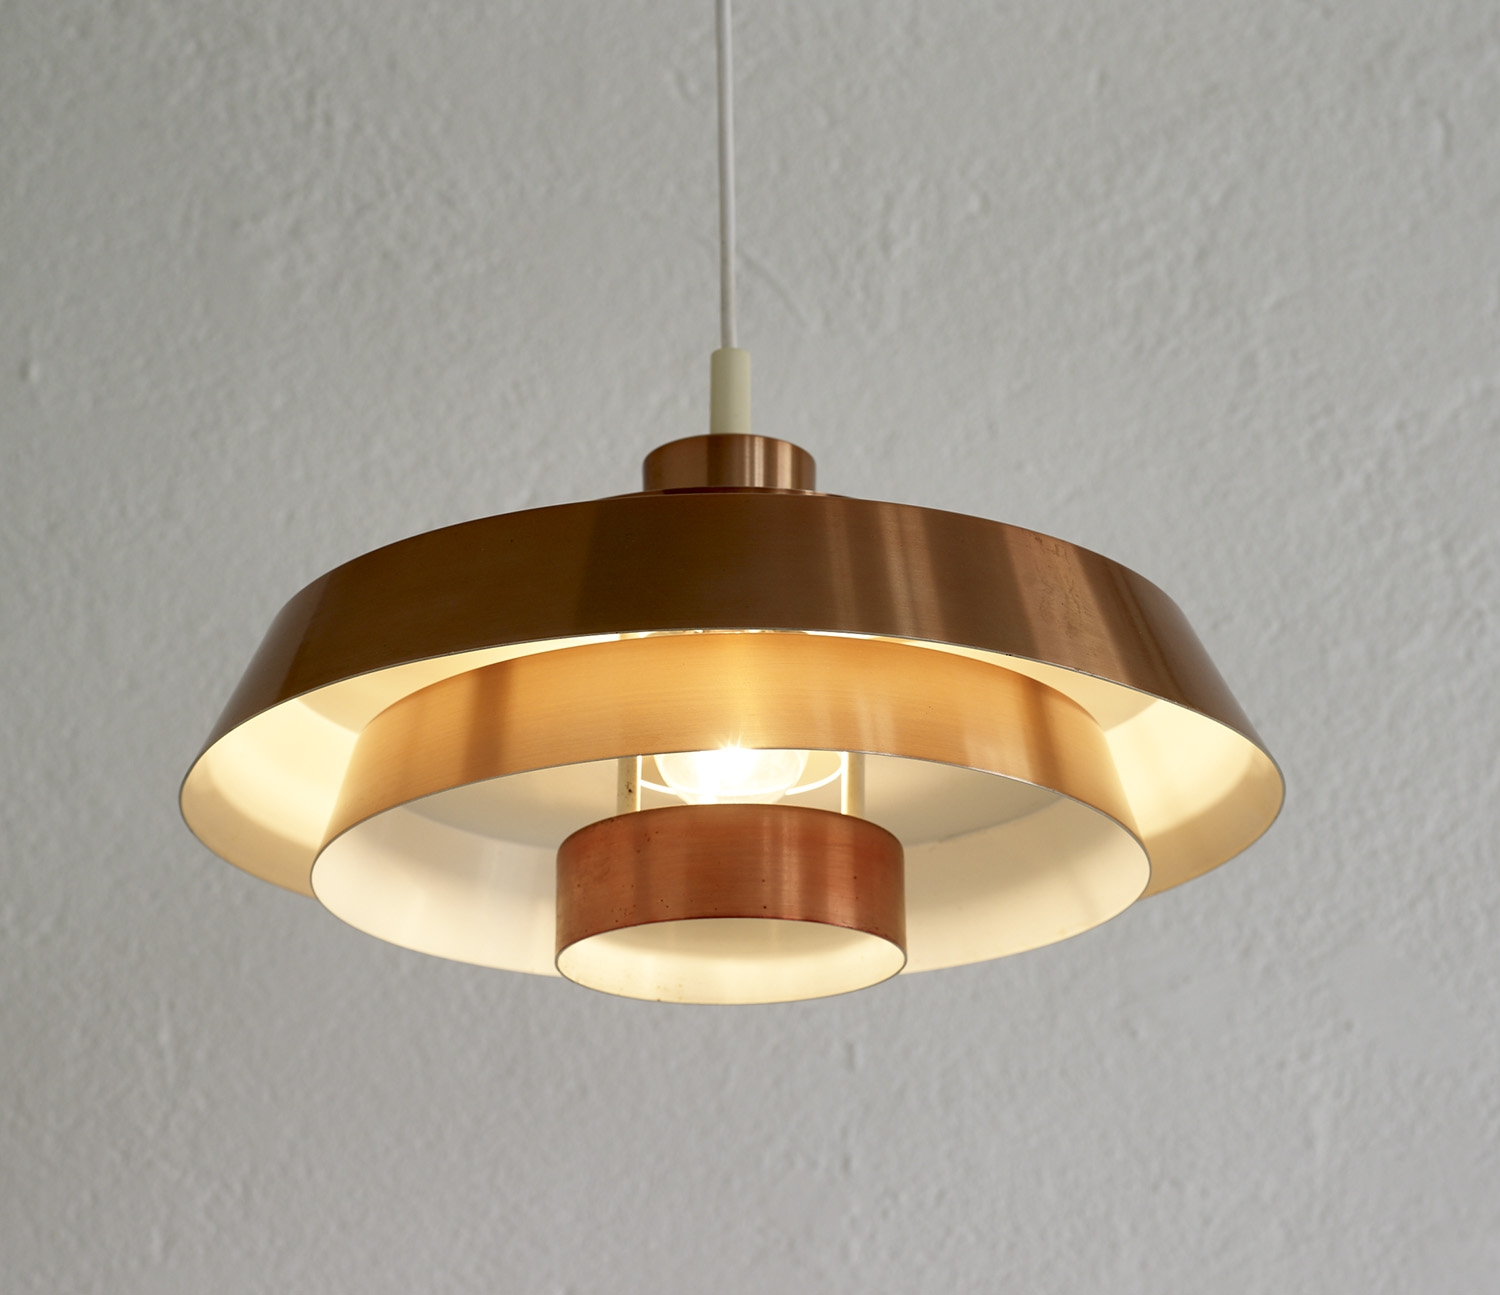 nova-copper-suspension-by-jo-hammerborg-image-02